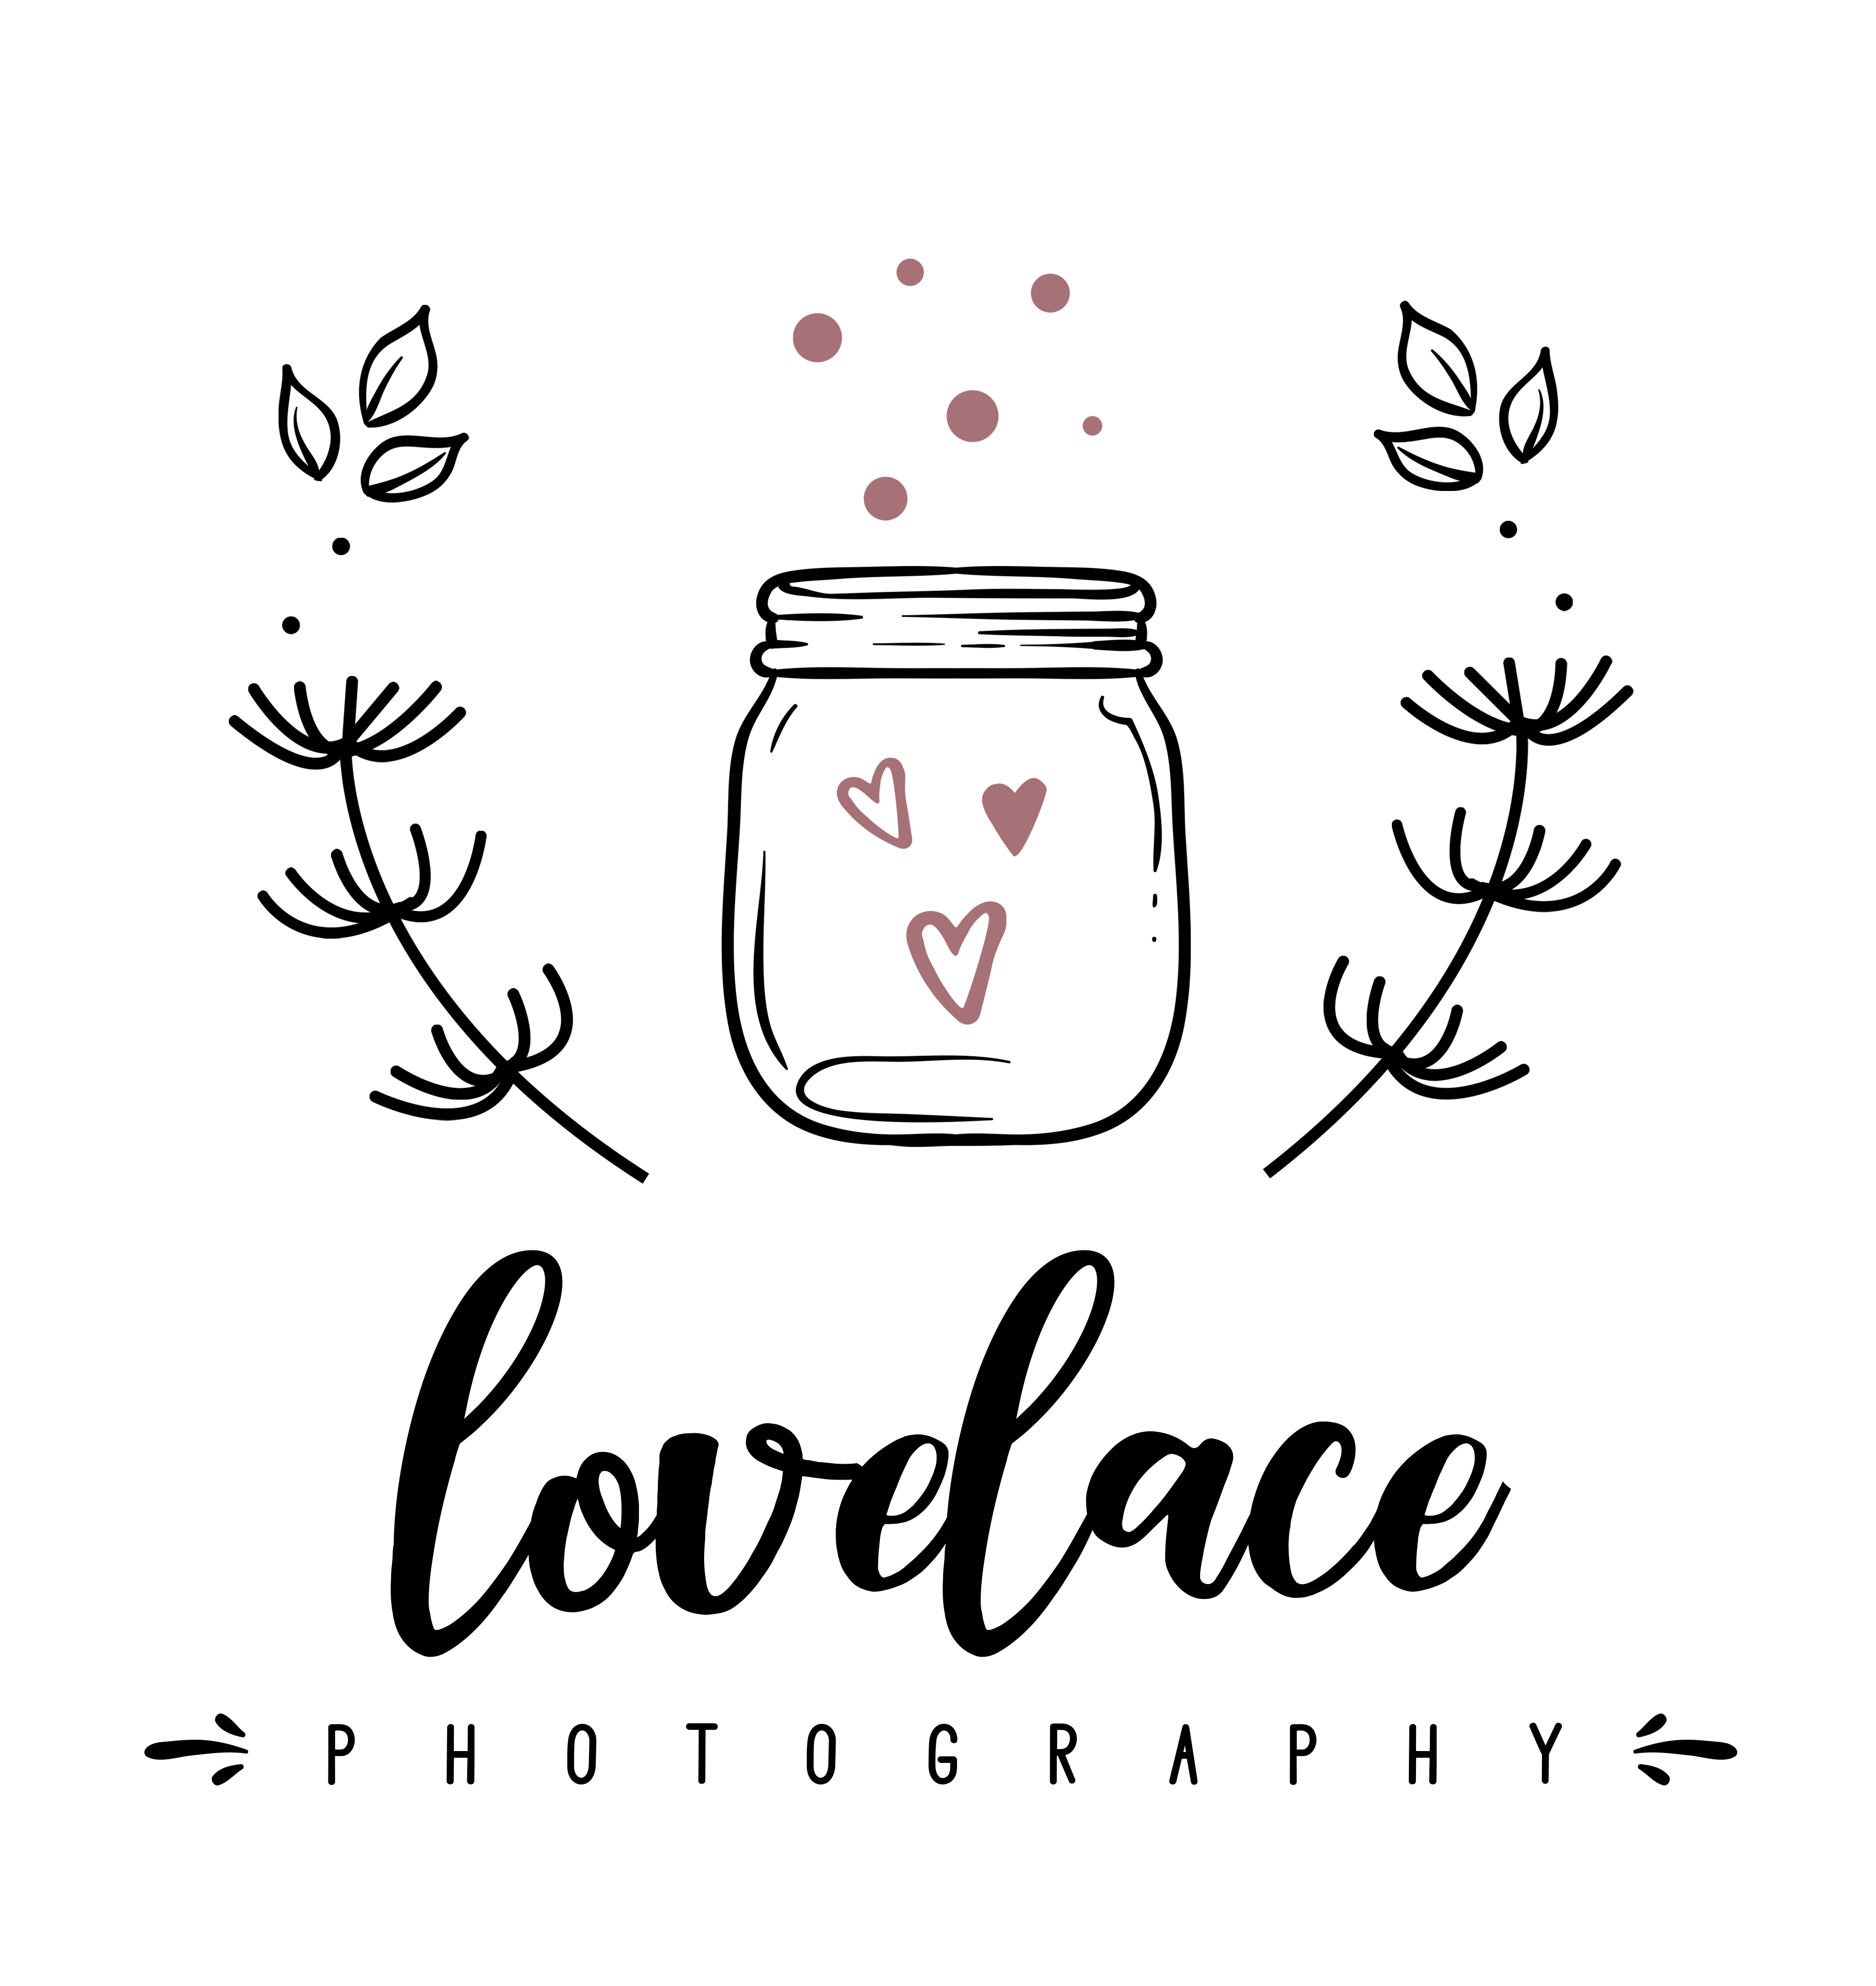 _lovelace.photography